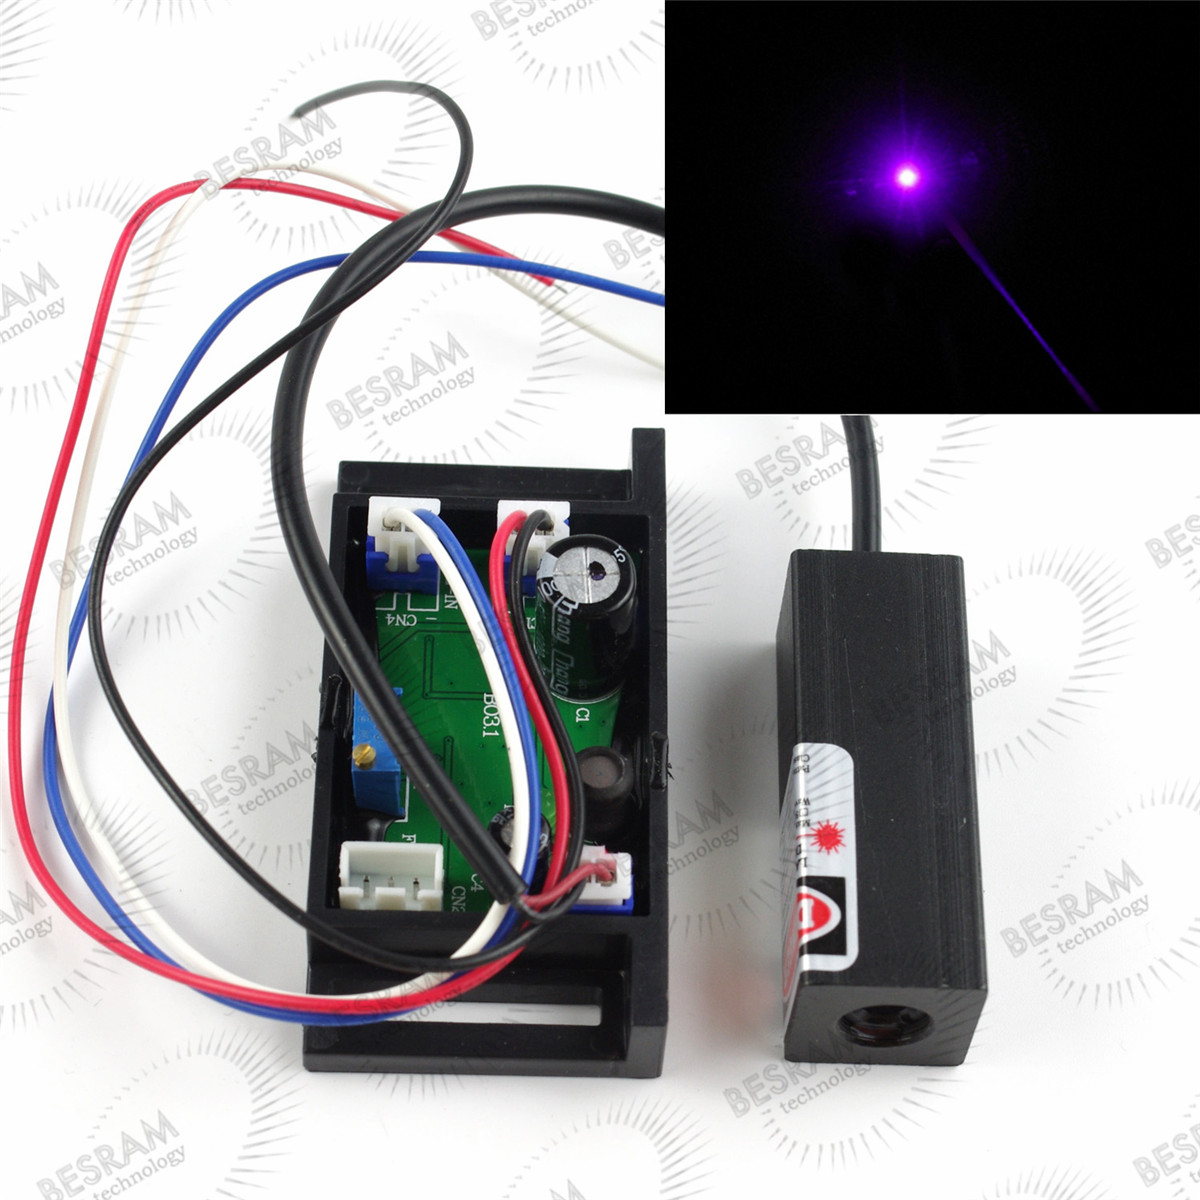 Blue Violet 405nm 10mW Laser Lazer Diode Module with TTL Stage Lighting Show Blu Ray noritsu blue laser head with driver pcb a type laser gun laser diode laser unit for qss 3000 3001 3011 3021 3101 china assembled